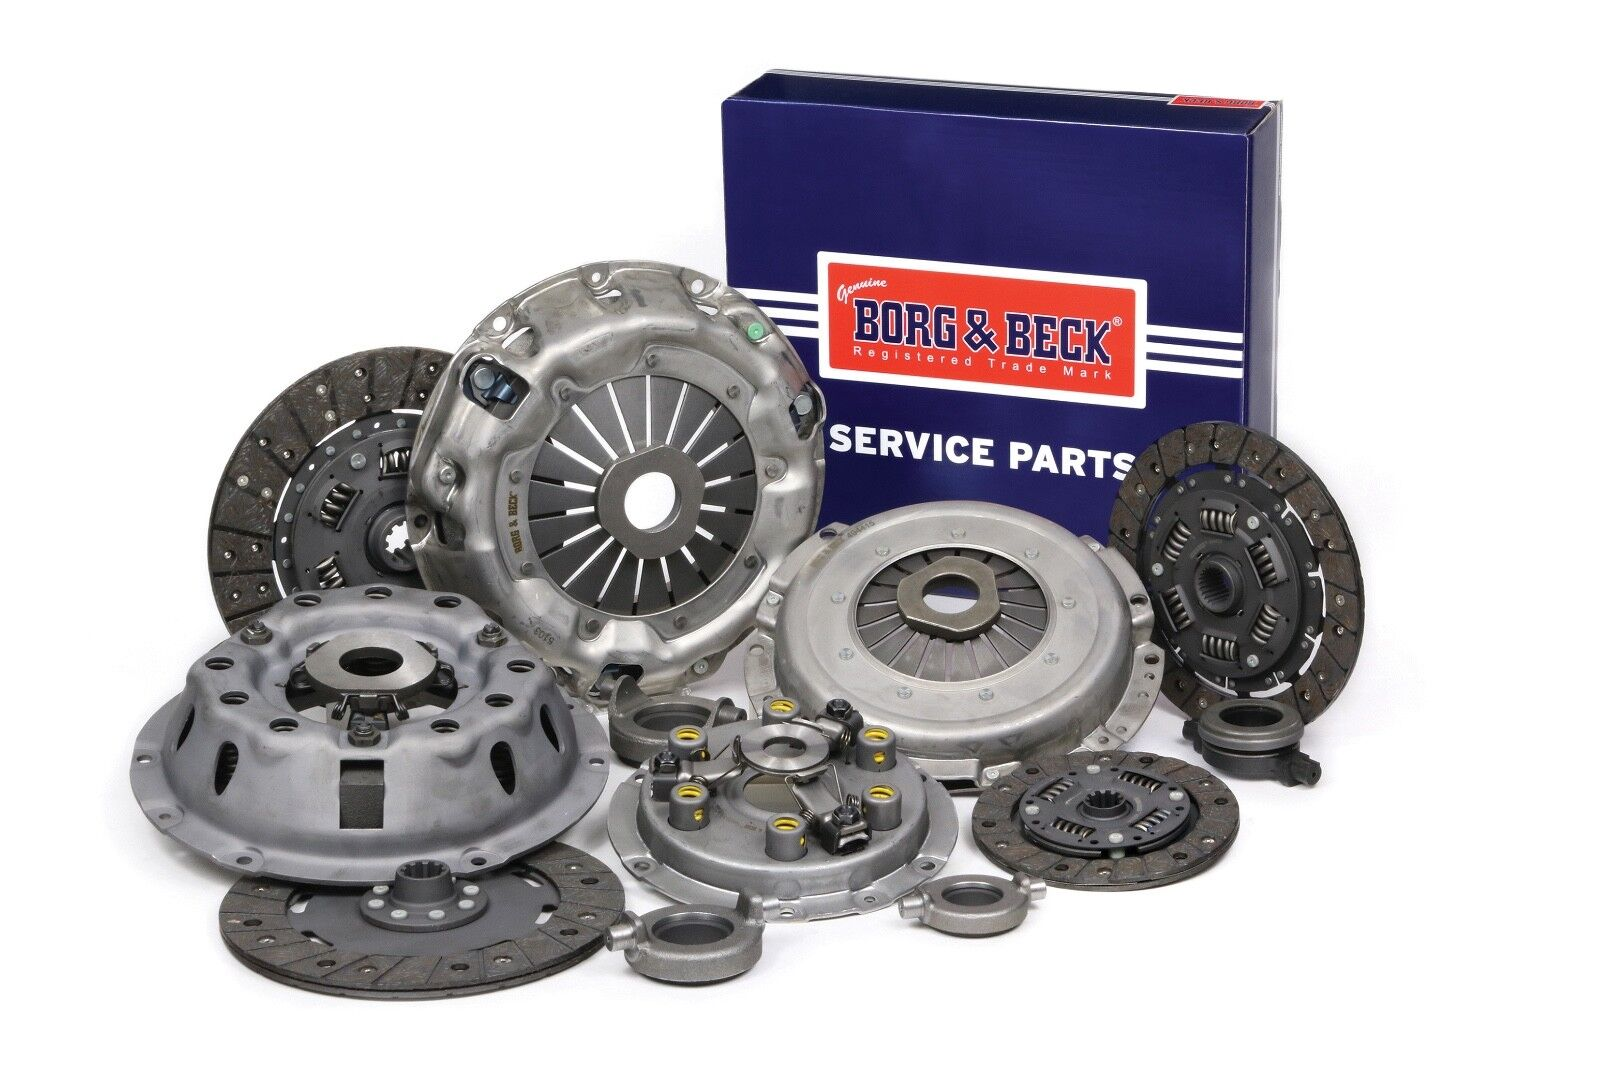 Triumph Clutch Kit - 3 Piece - Borg and Beck HK9788 - Fits TR2 - TR3 - TR4